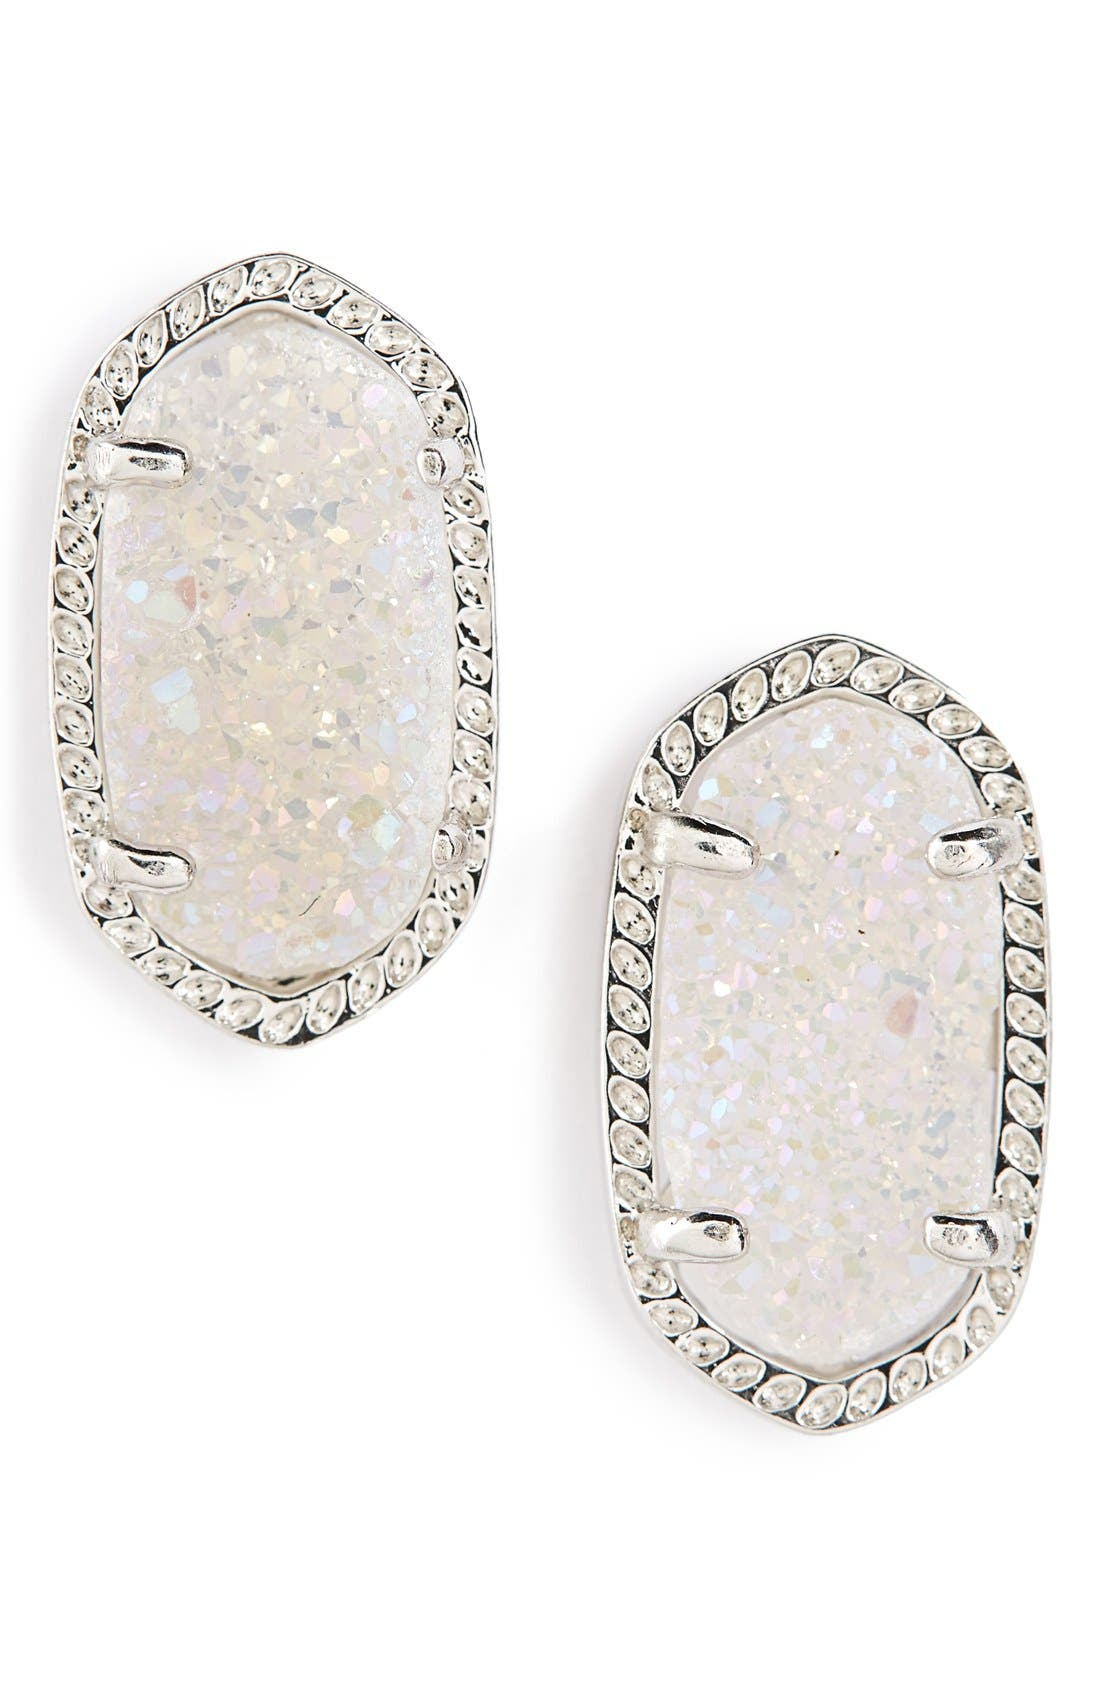 KENDRA SCOTT Ellie Oval Stone Stud Earrings